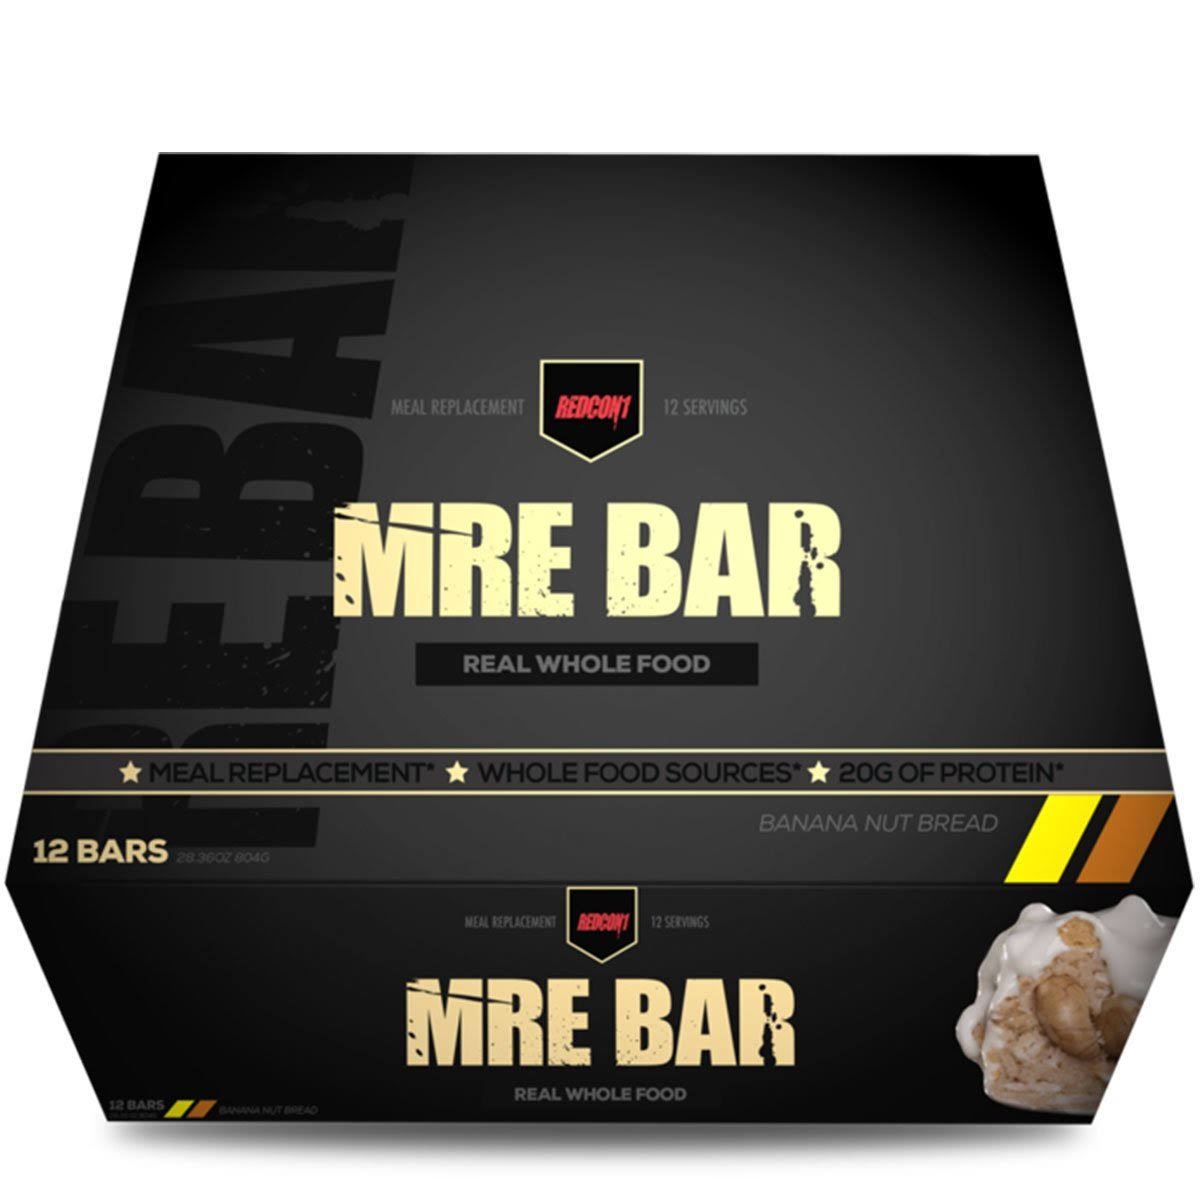 Mre Bar Protein Bar, Banana Nut Bread - 12 bars, 28.36 oz